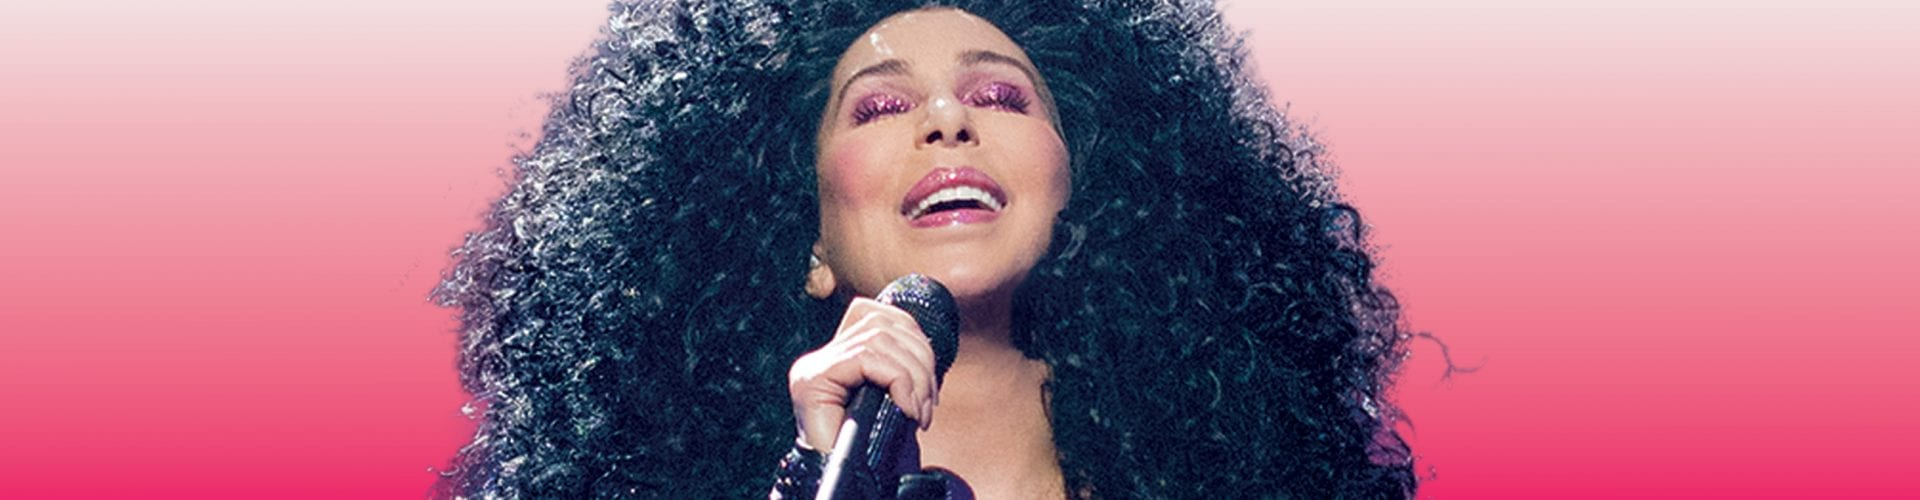 Cher Adds New Shows To 'Here We Go Again' Tour